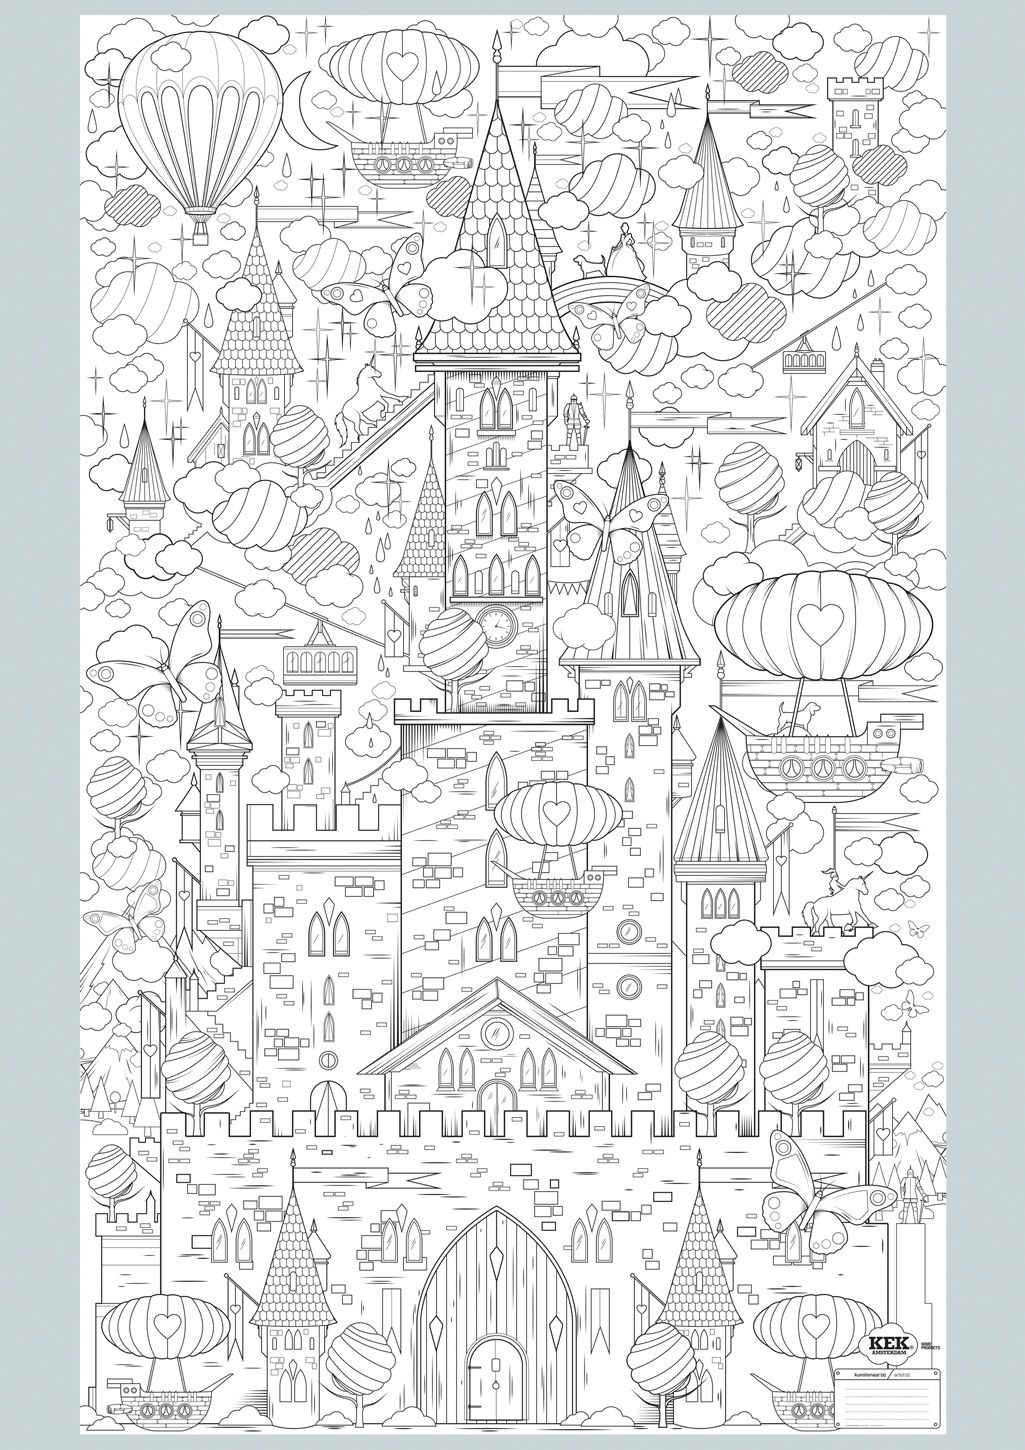 Coloring voor adults kleuren voor volwassenen - King Of My Castle Fantasy Abstract Doodle Zentangle Paisley Coloring Pages Colouring Adult Detailed Advanced